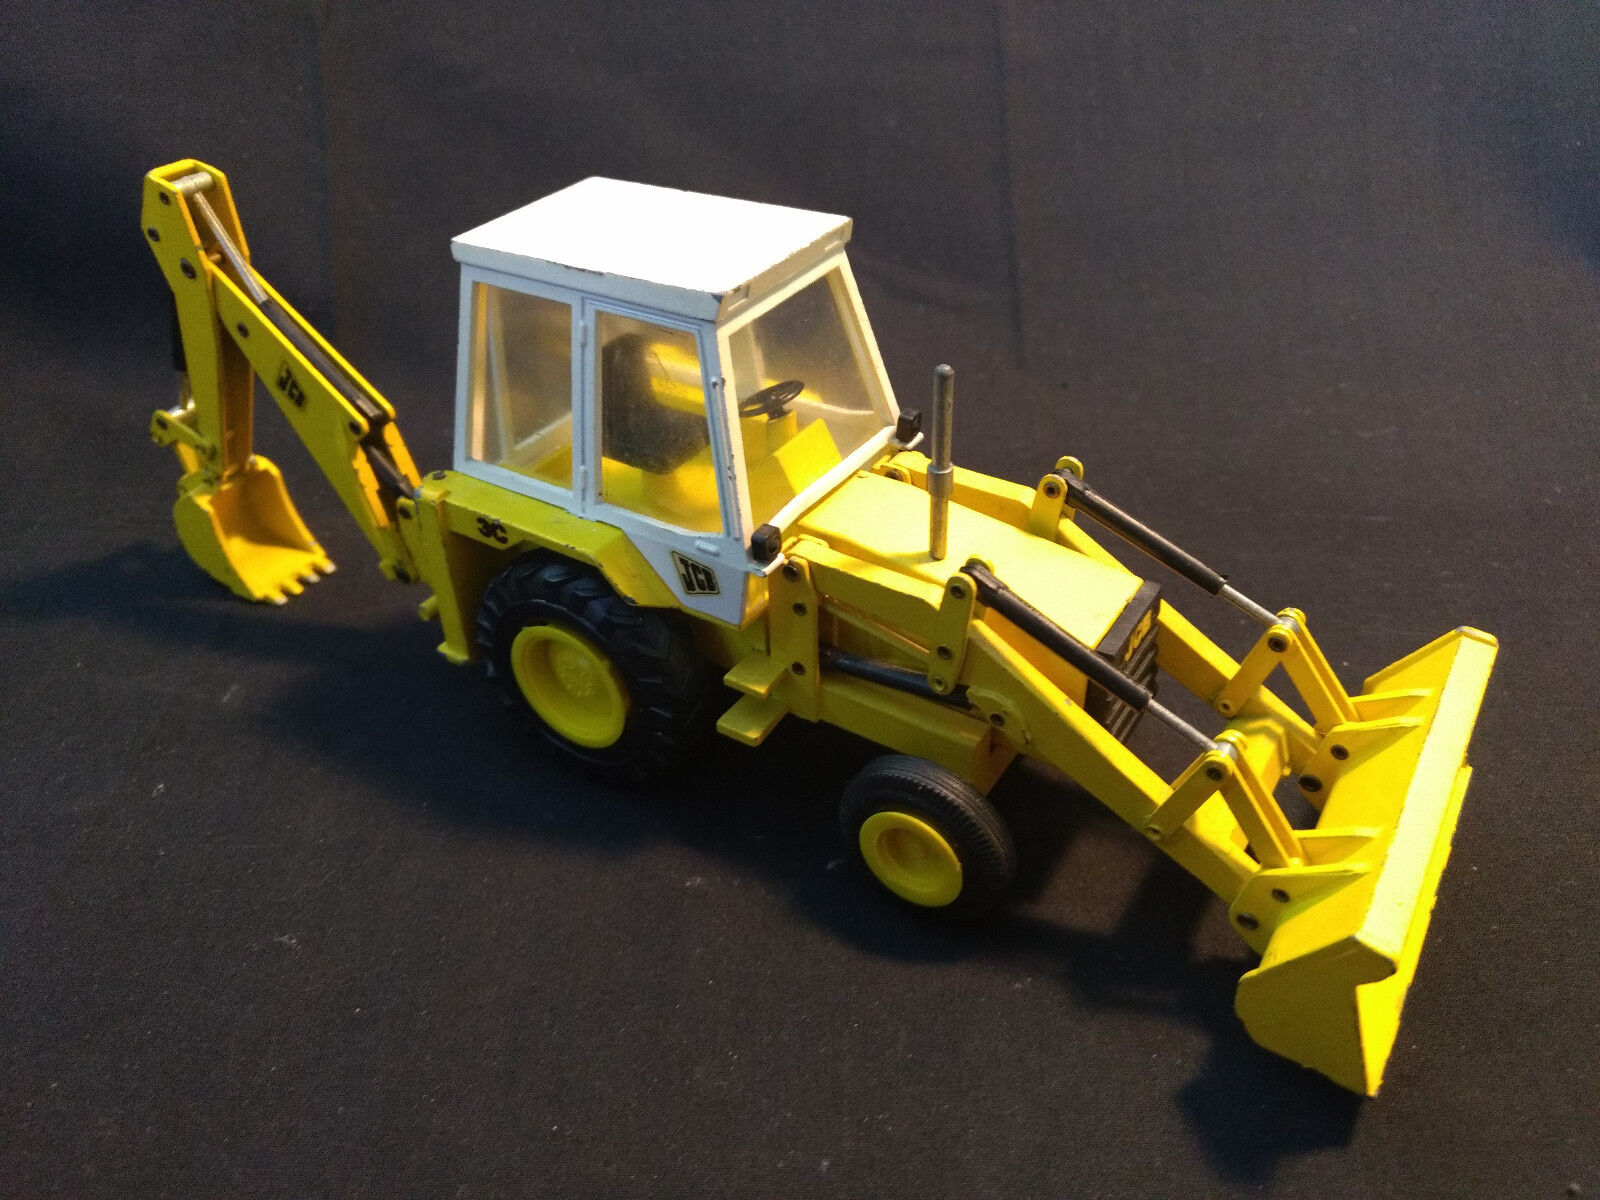 NZG Modelle No. 216 Excavator Loader Toy Made In West Germany bianca Cab